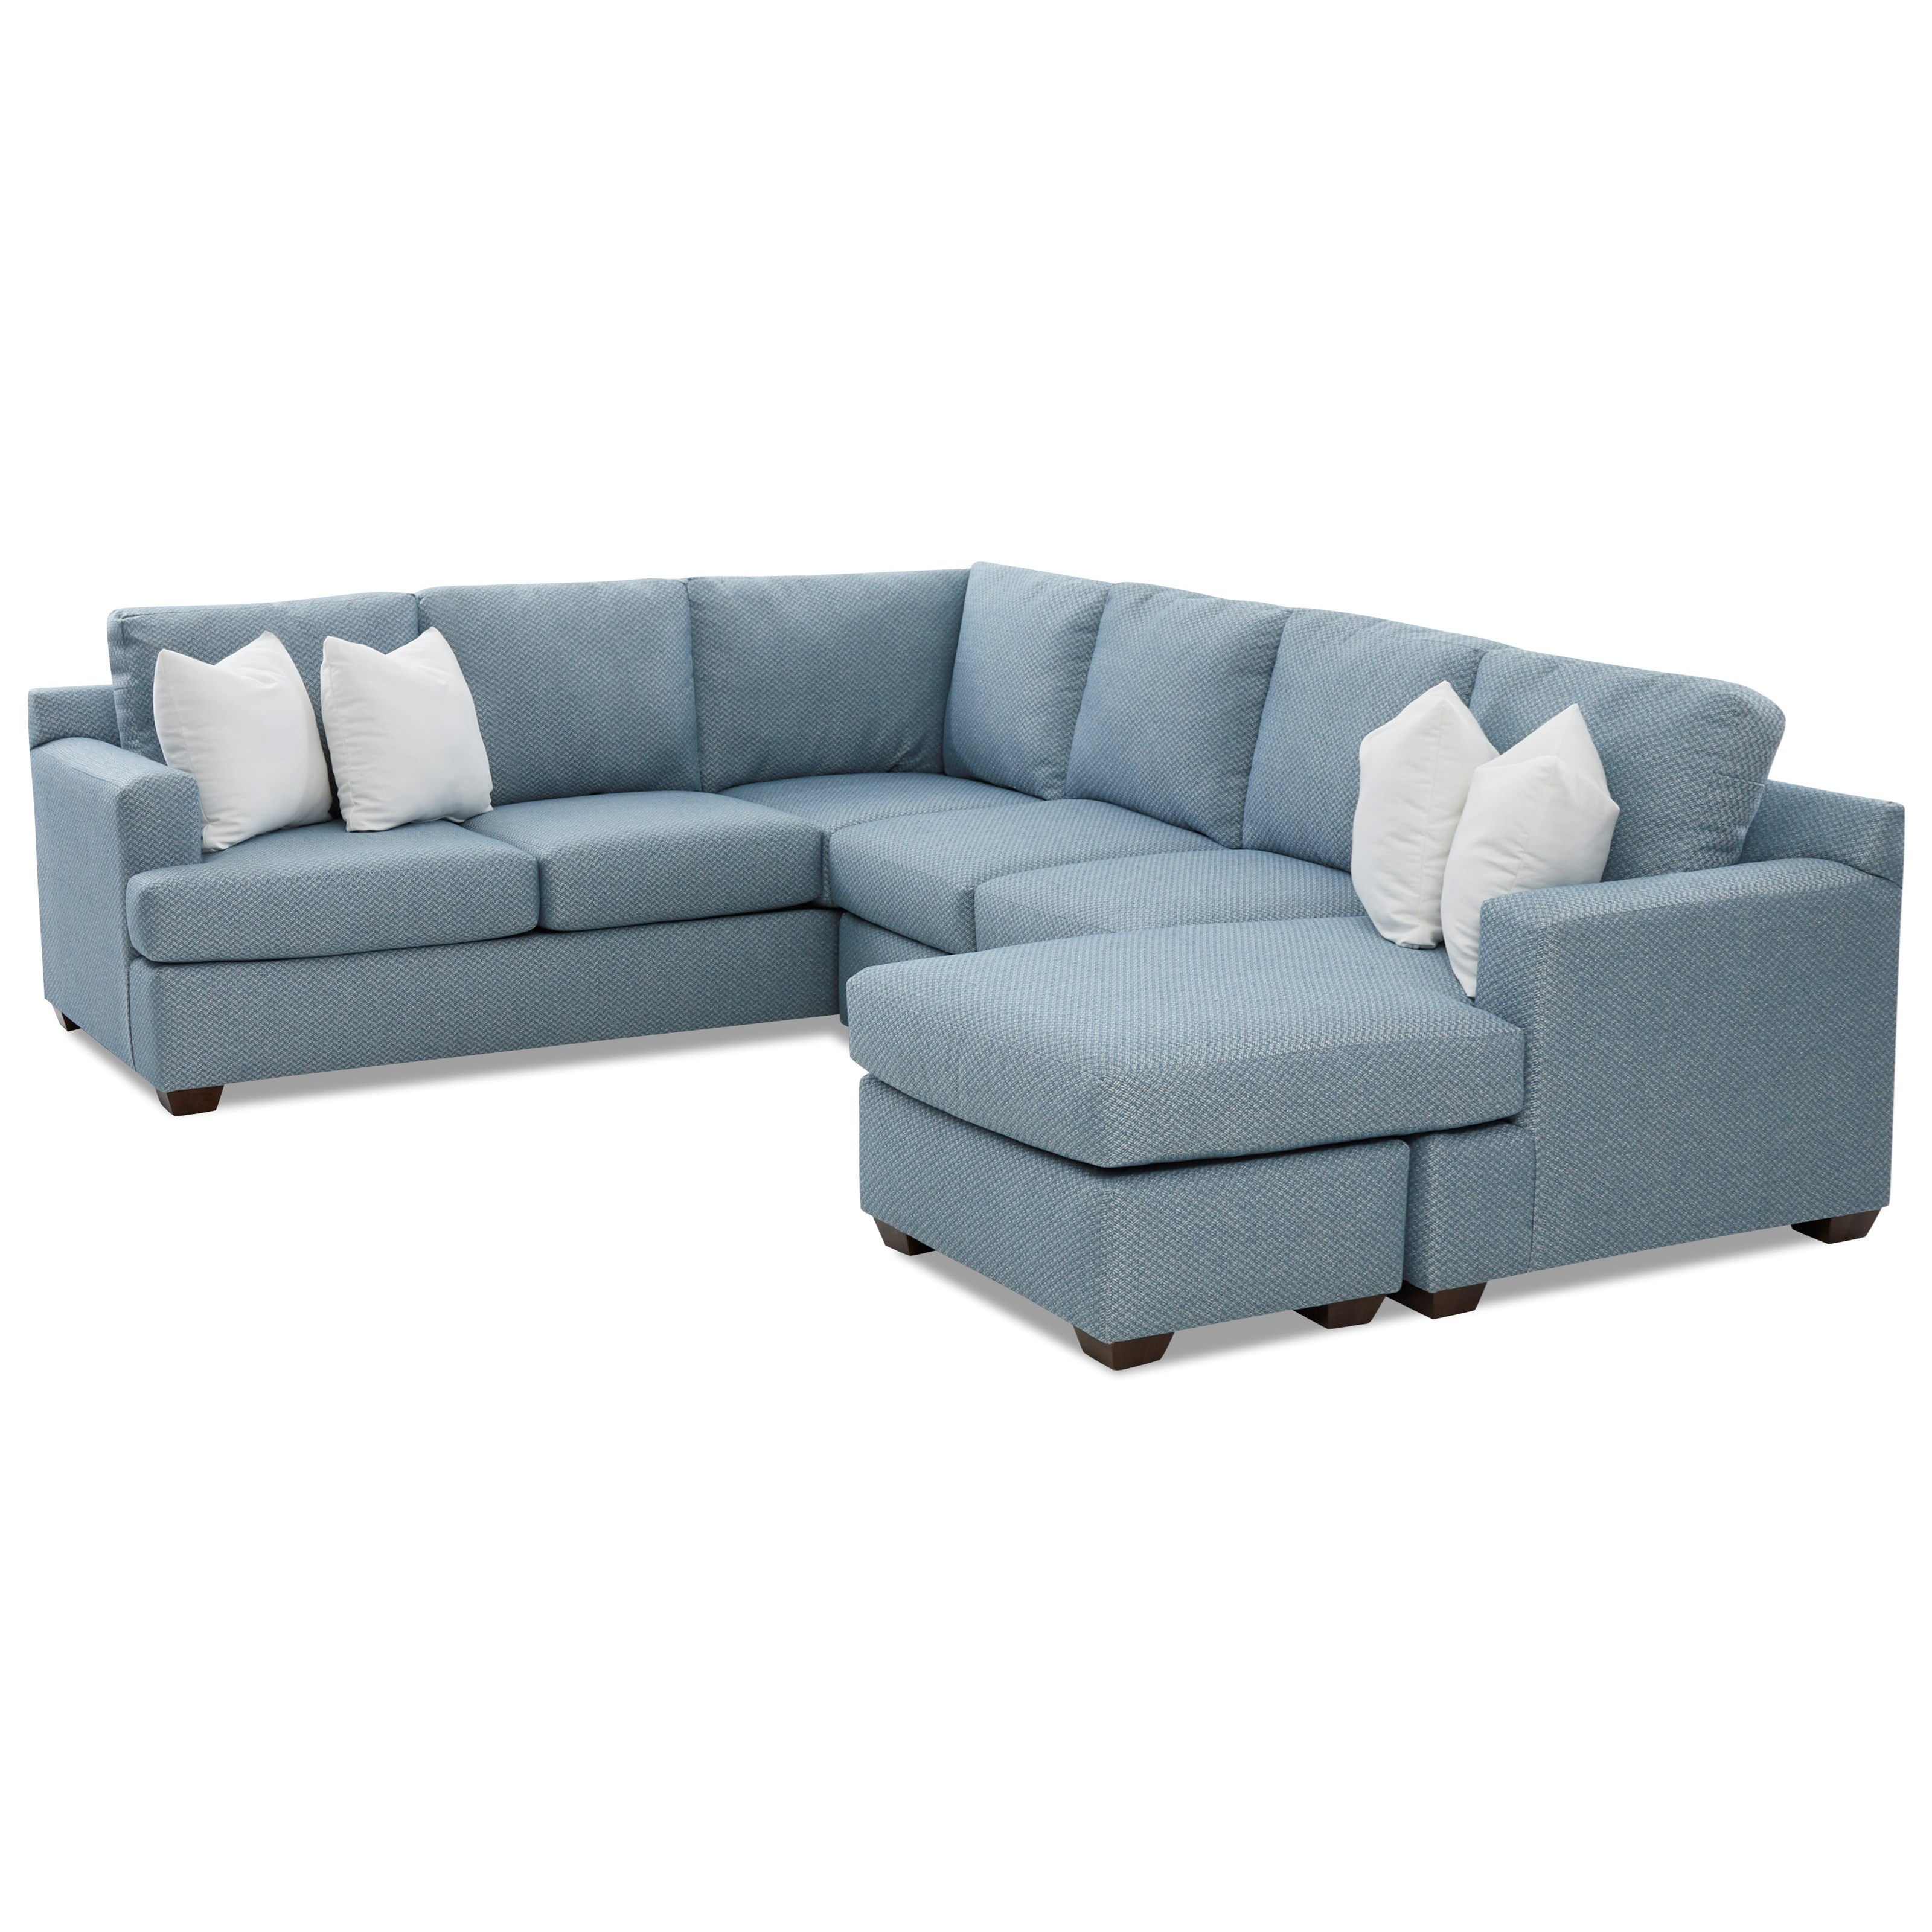 Juniper 5-Seat Sectional Sofa with RAF Chaise Ottoman by Klaussner at  Novello Home Furnishings